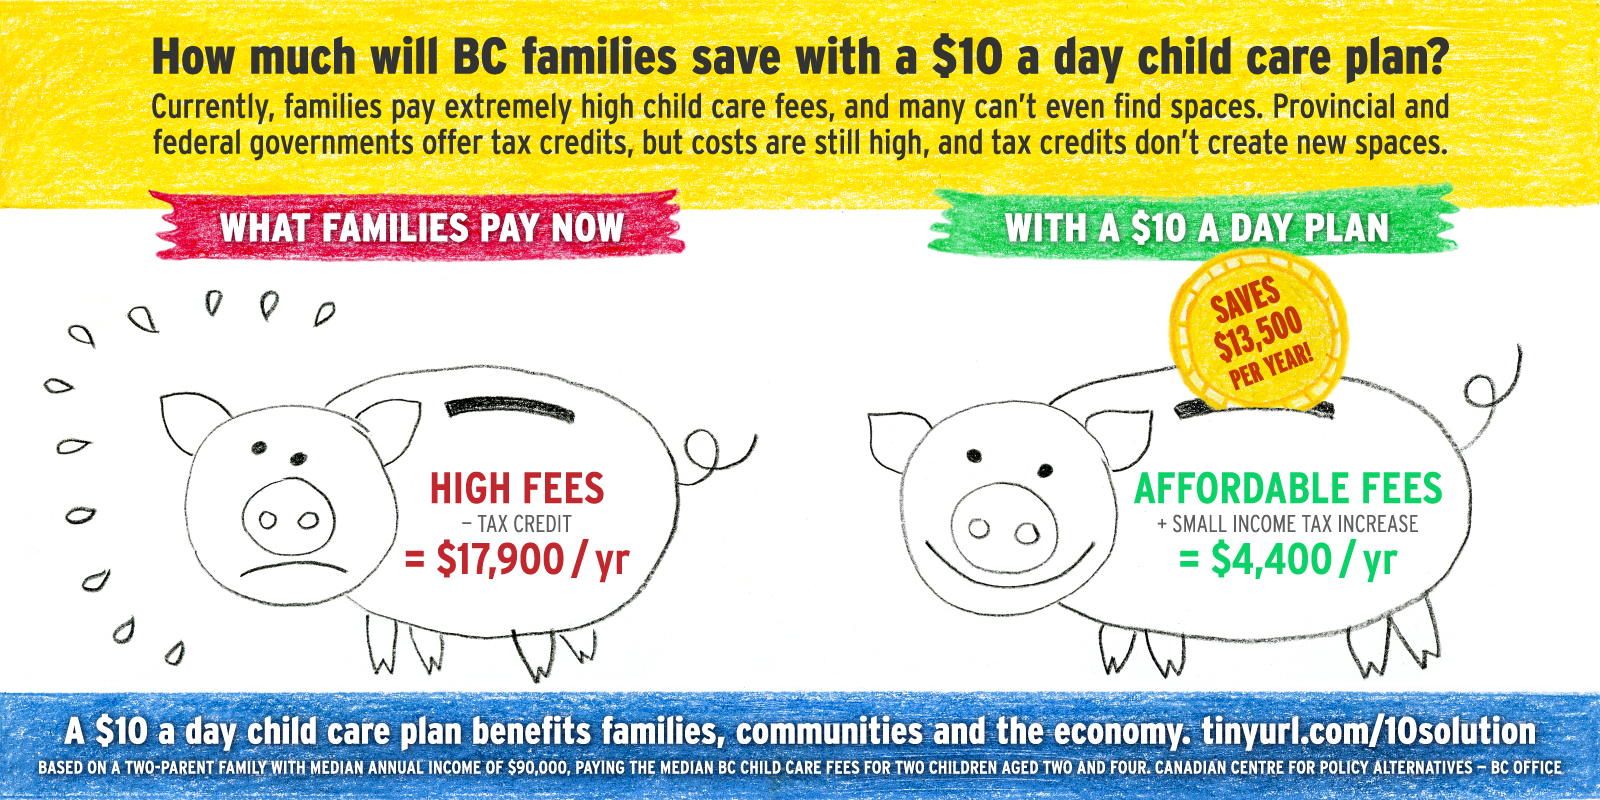 Infographic: How much will BC families save with $10 a day child care plan?